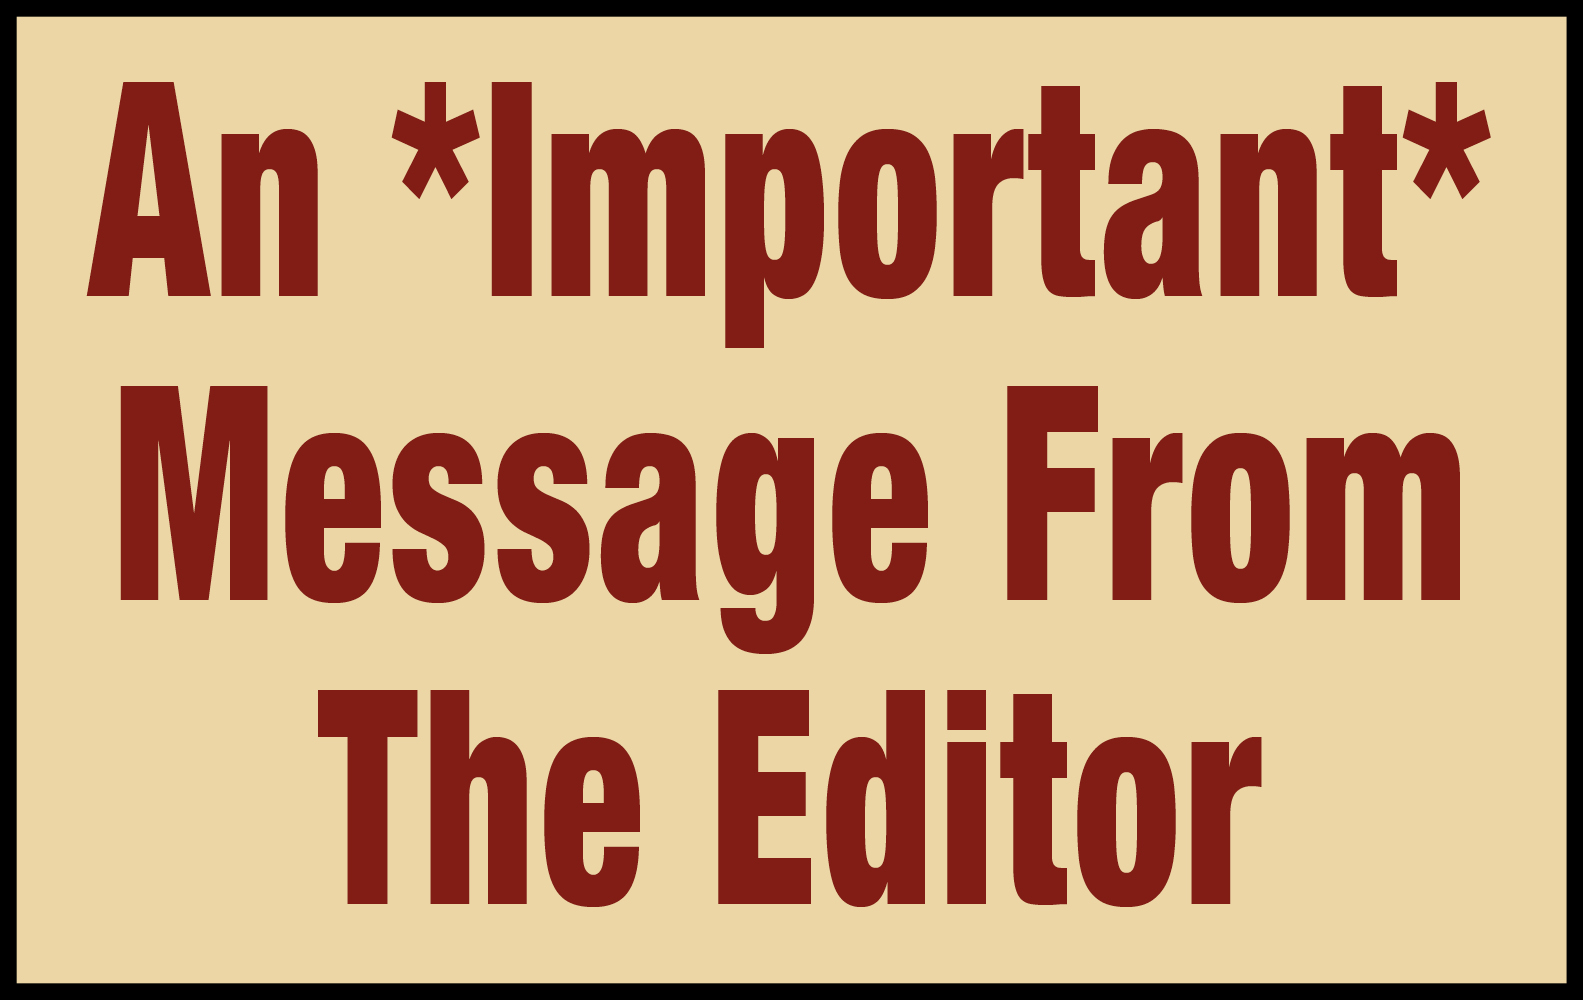 message from editor